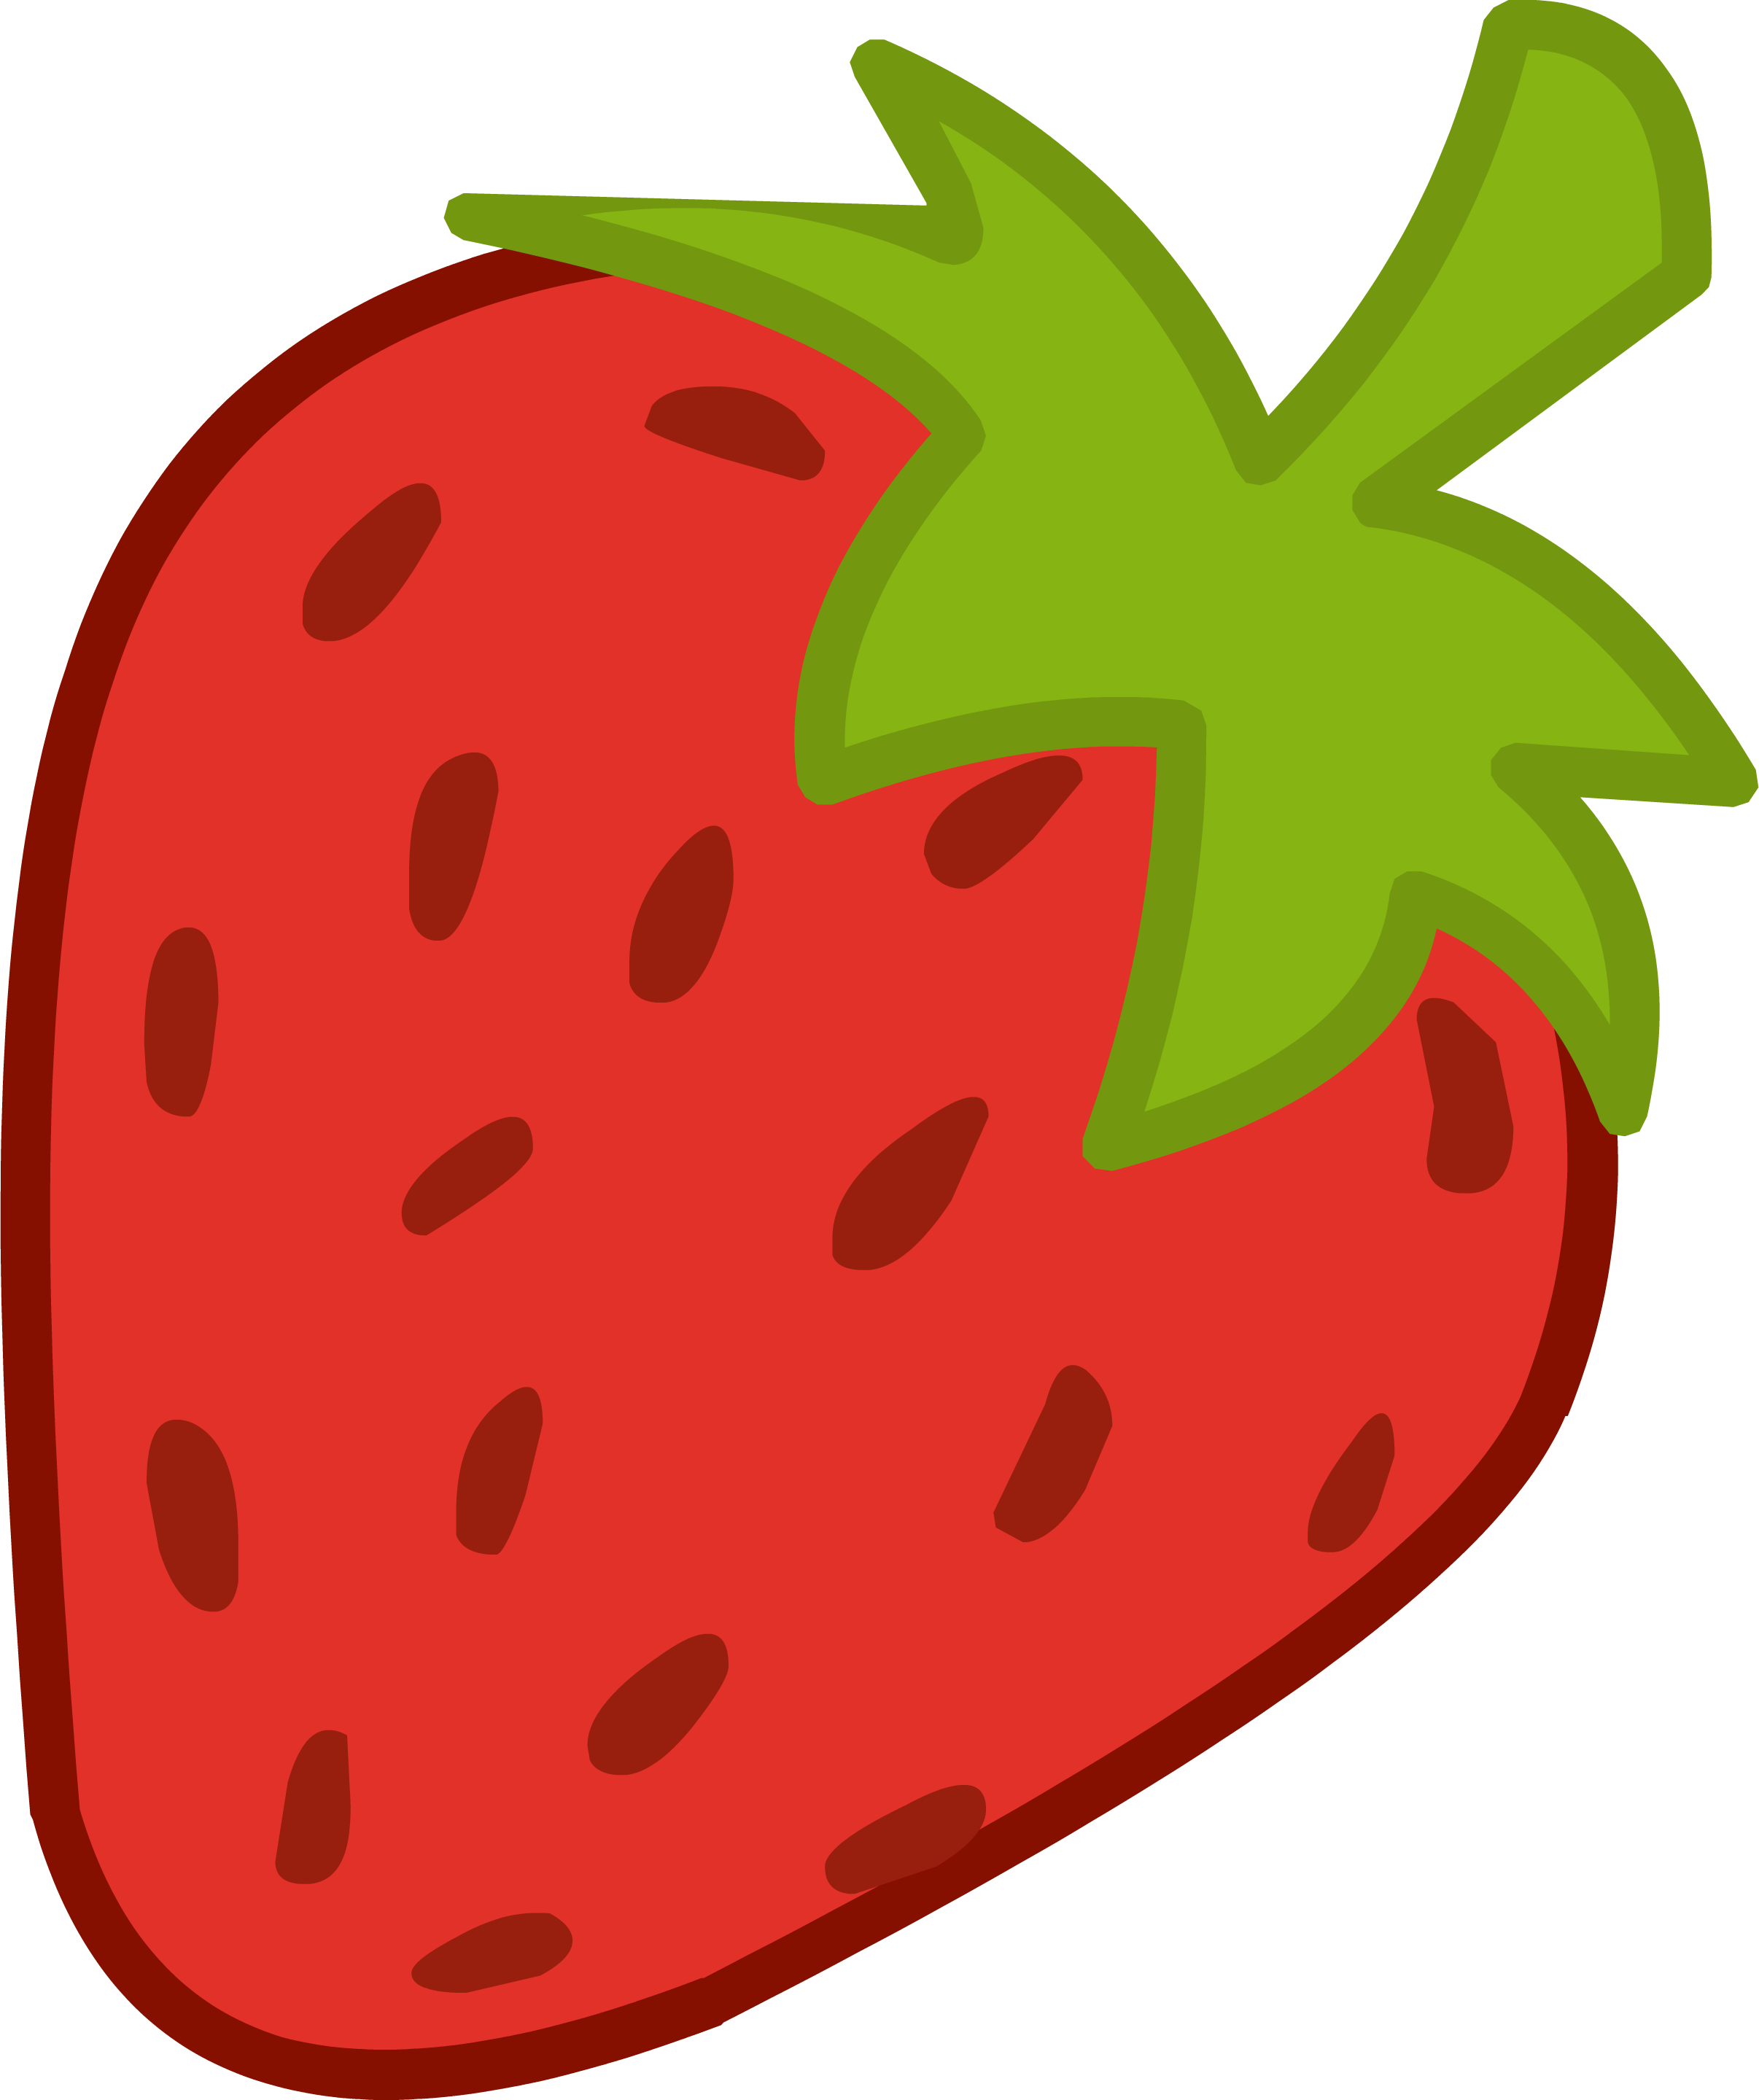 Strawberries clipart png. Strawberry shortcake free clip